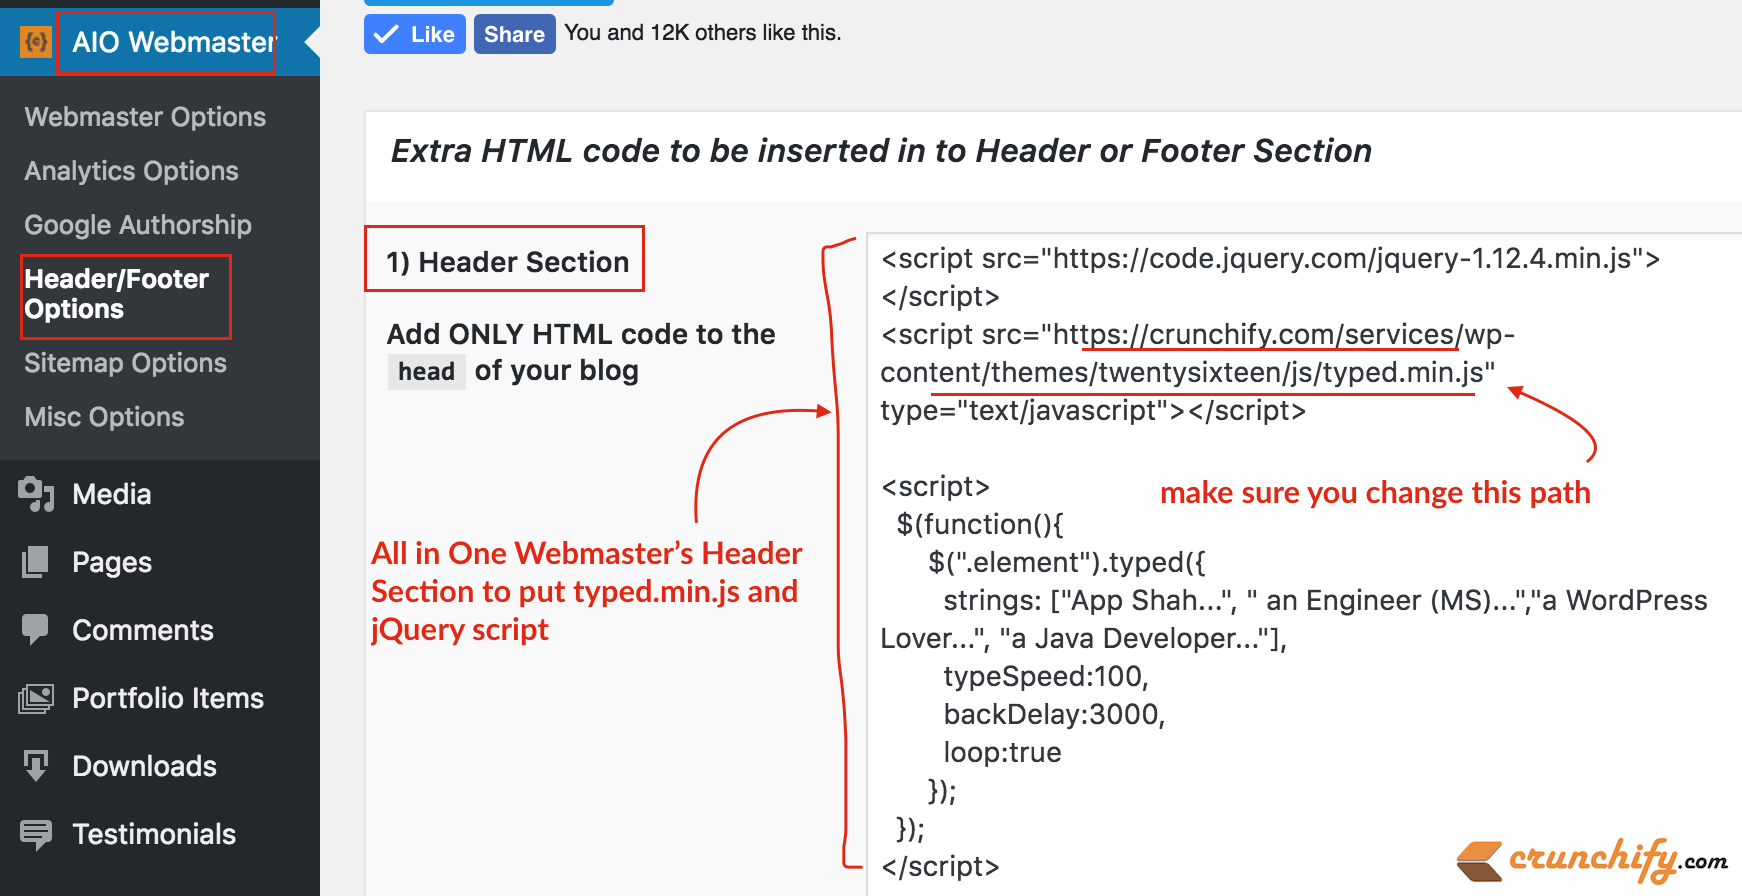 All in One Webmaster Header Section to put typed.min.js and jQuery script